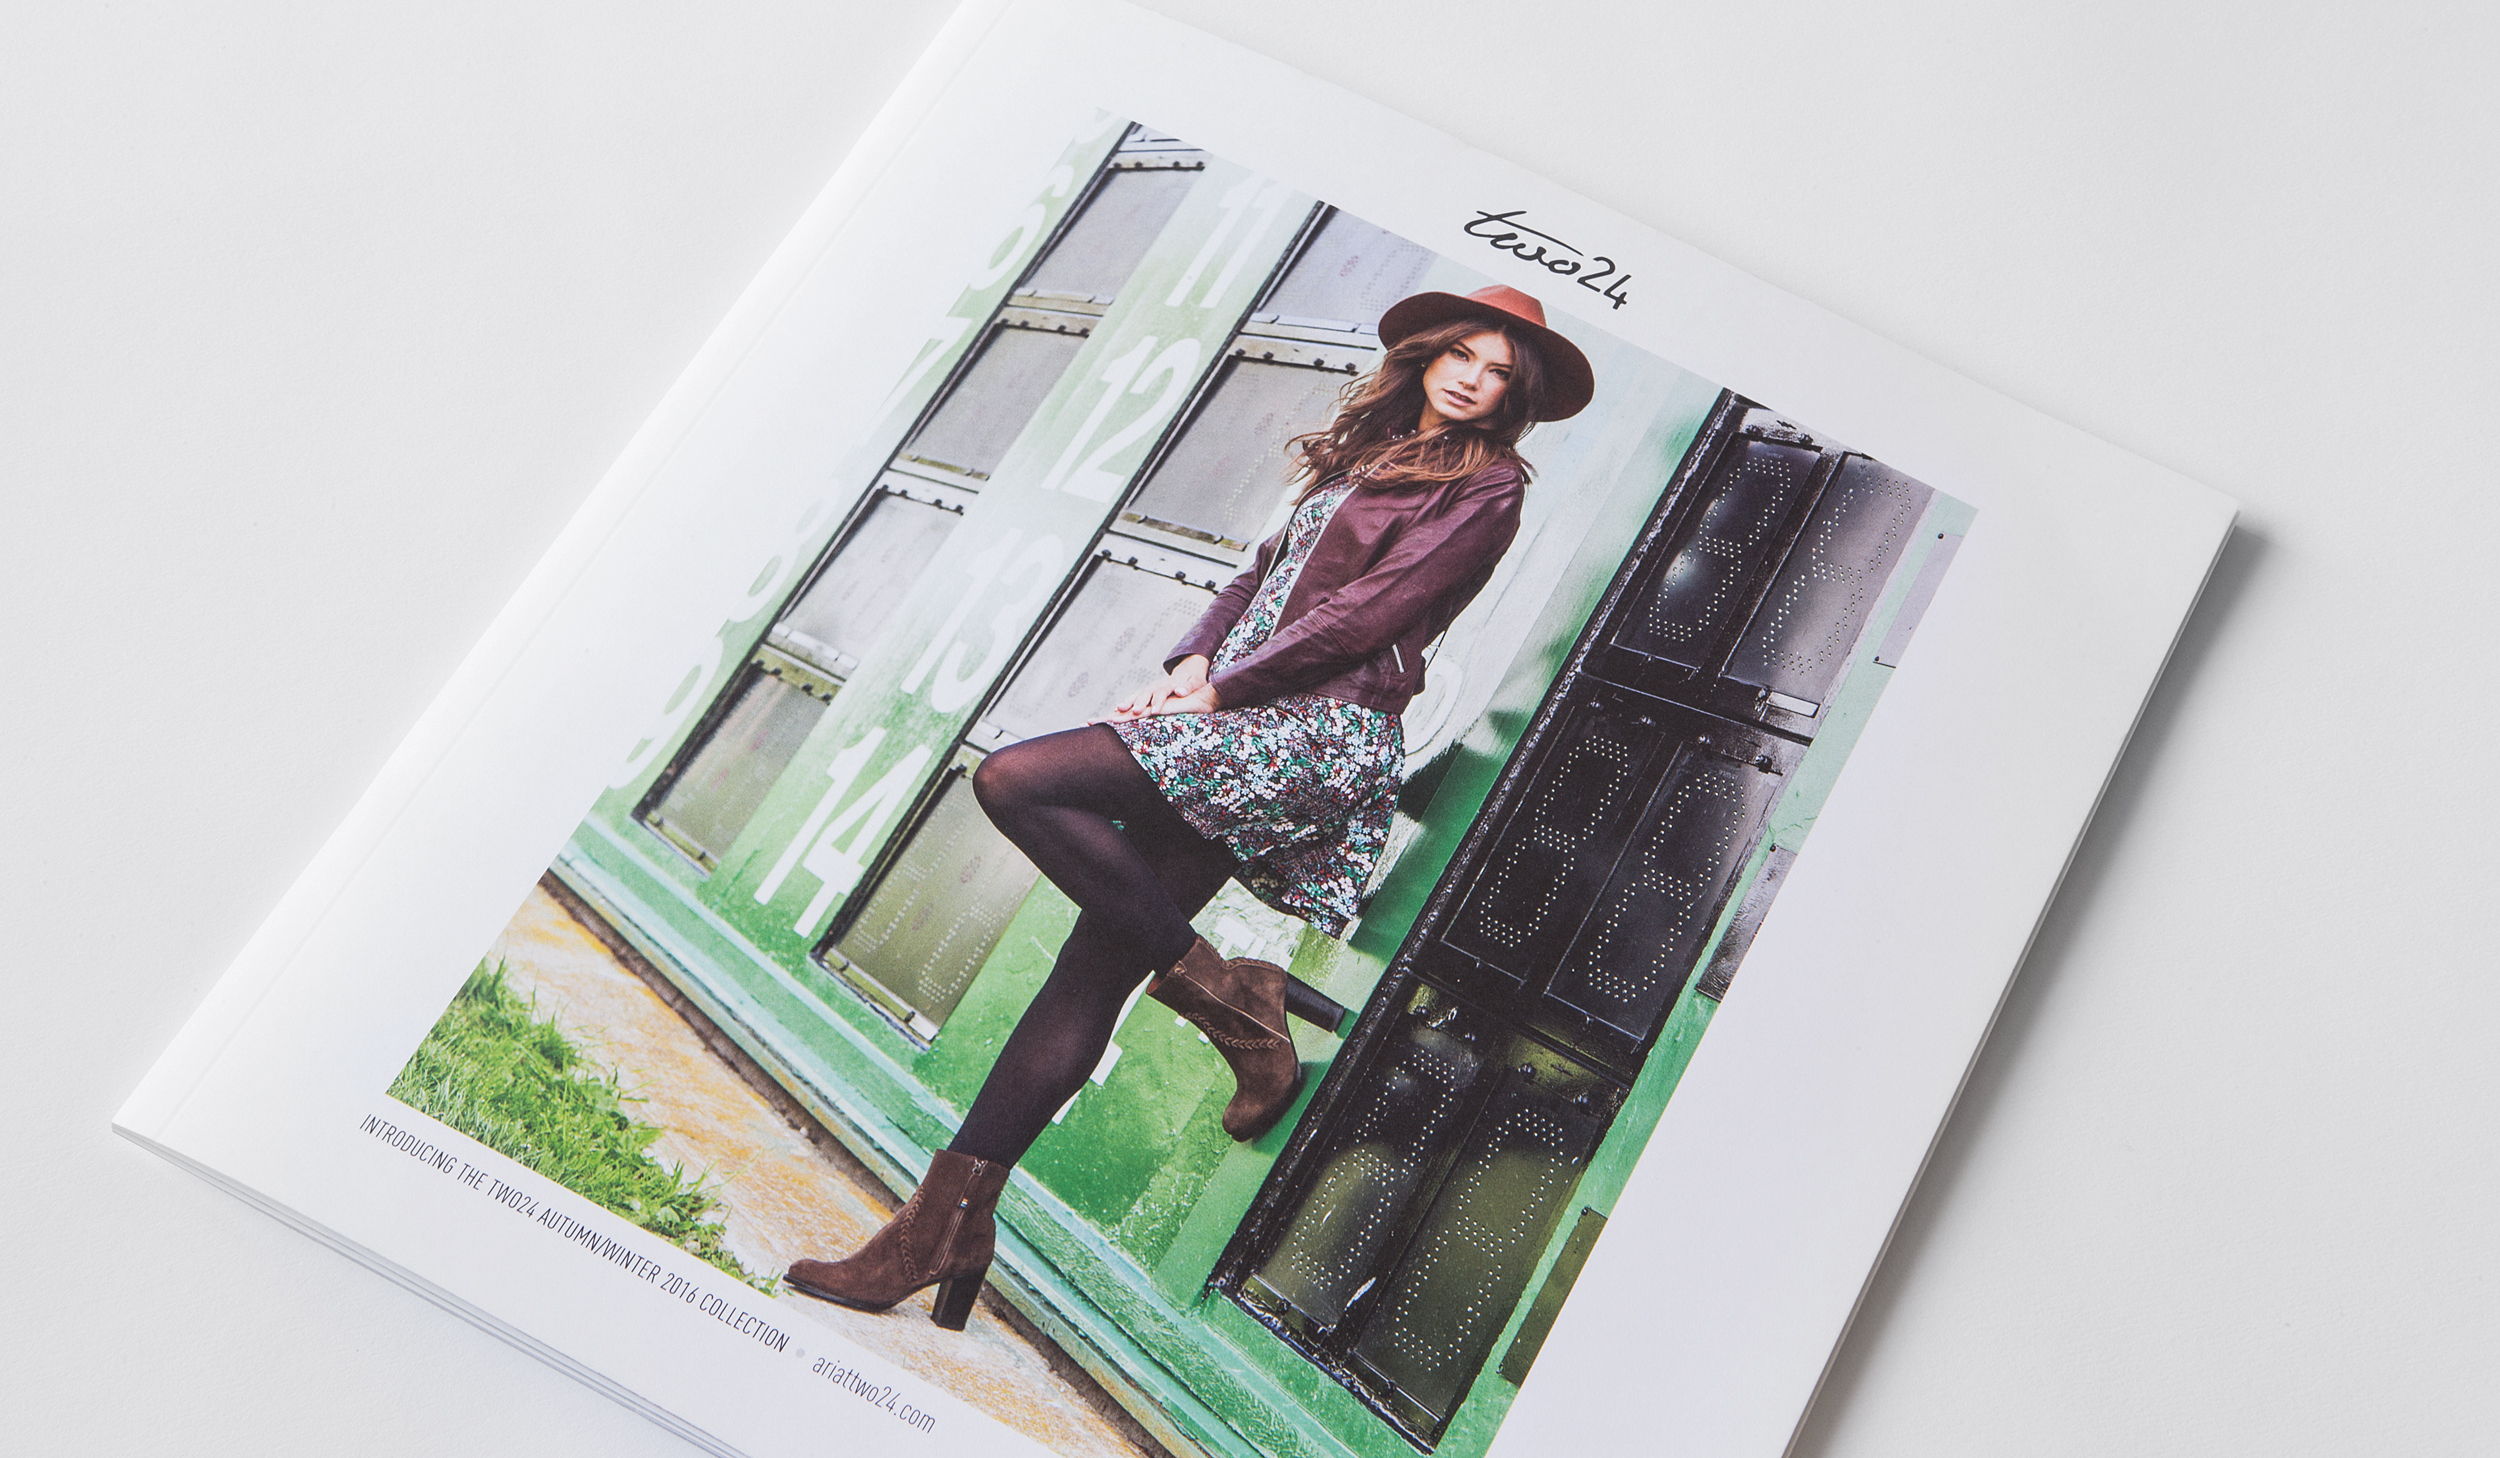 Ariat Two 24 Magazine cover with women modeling in fashionable boots